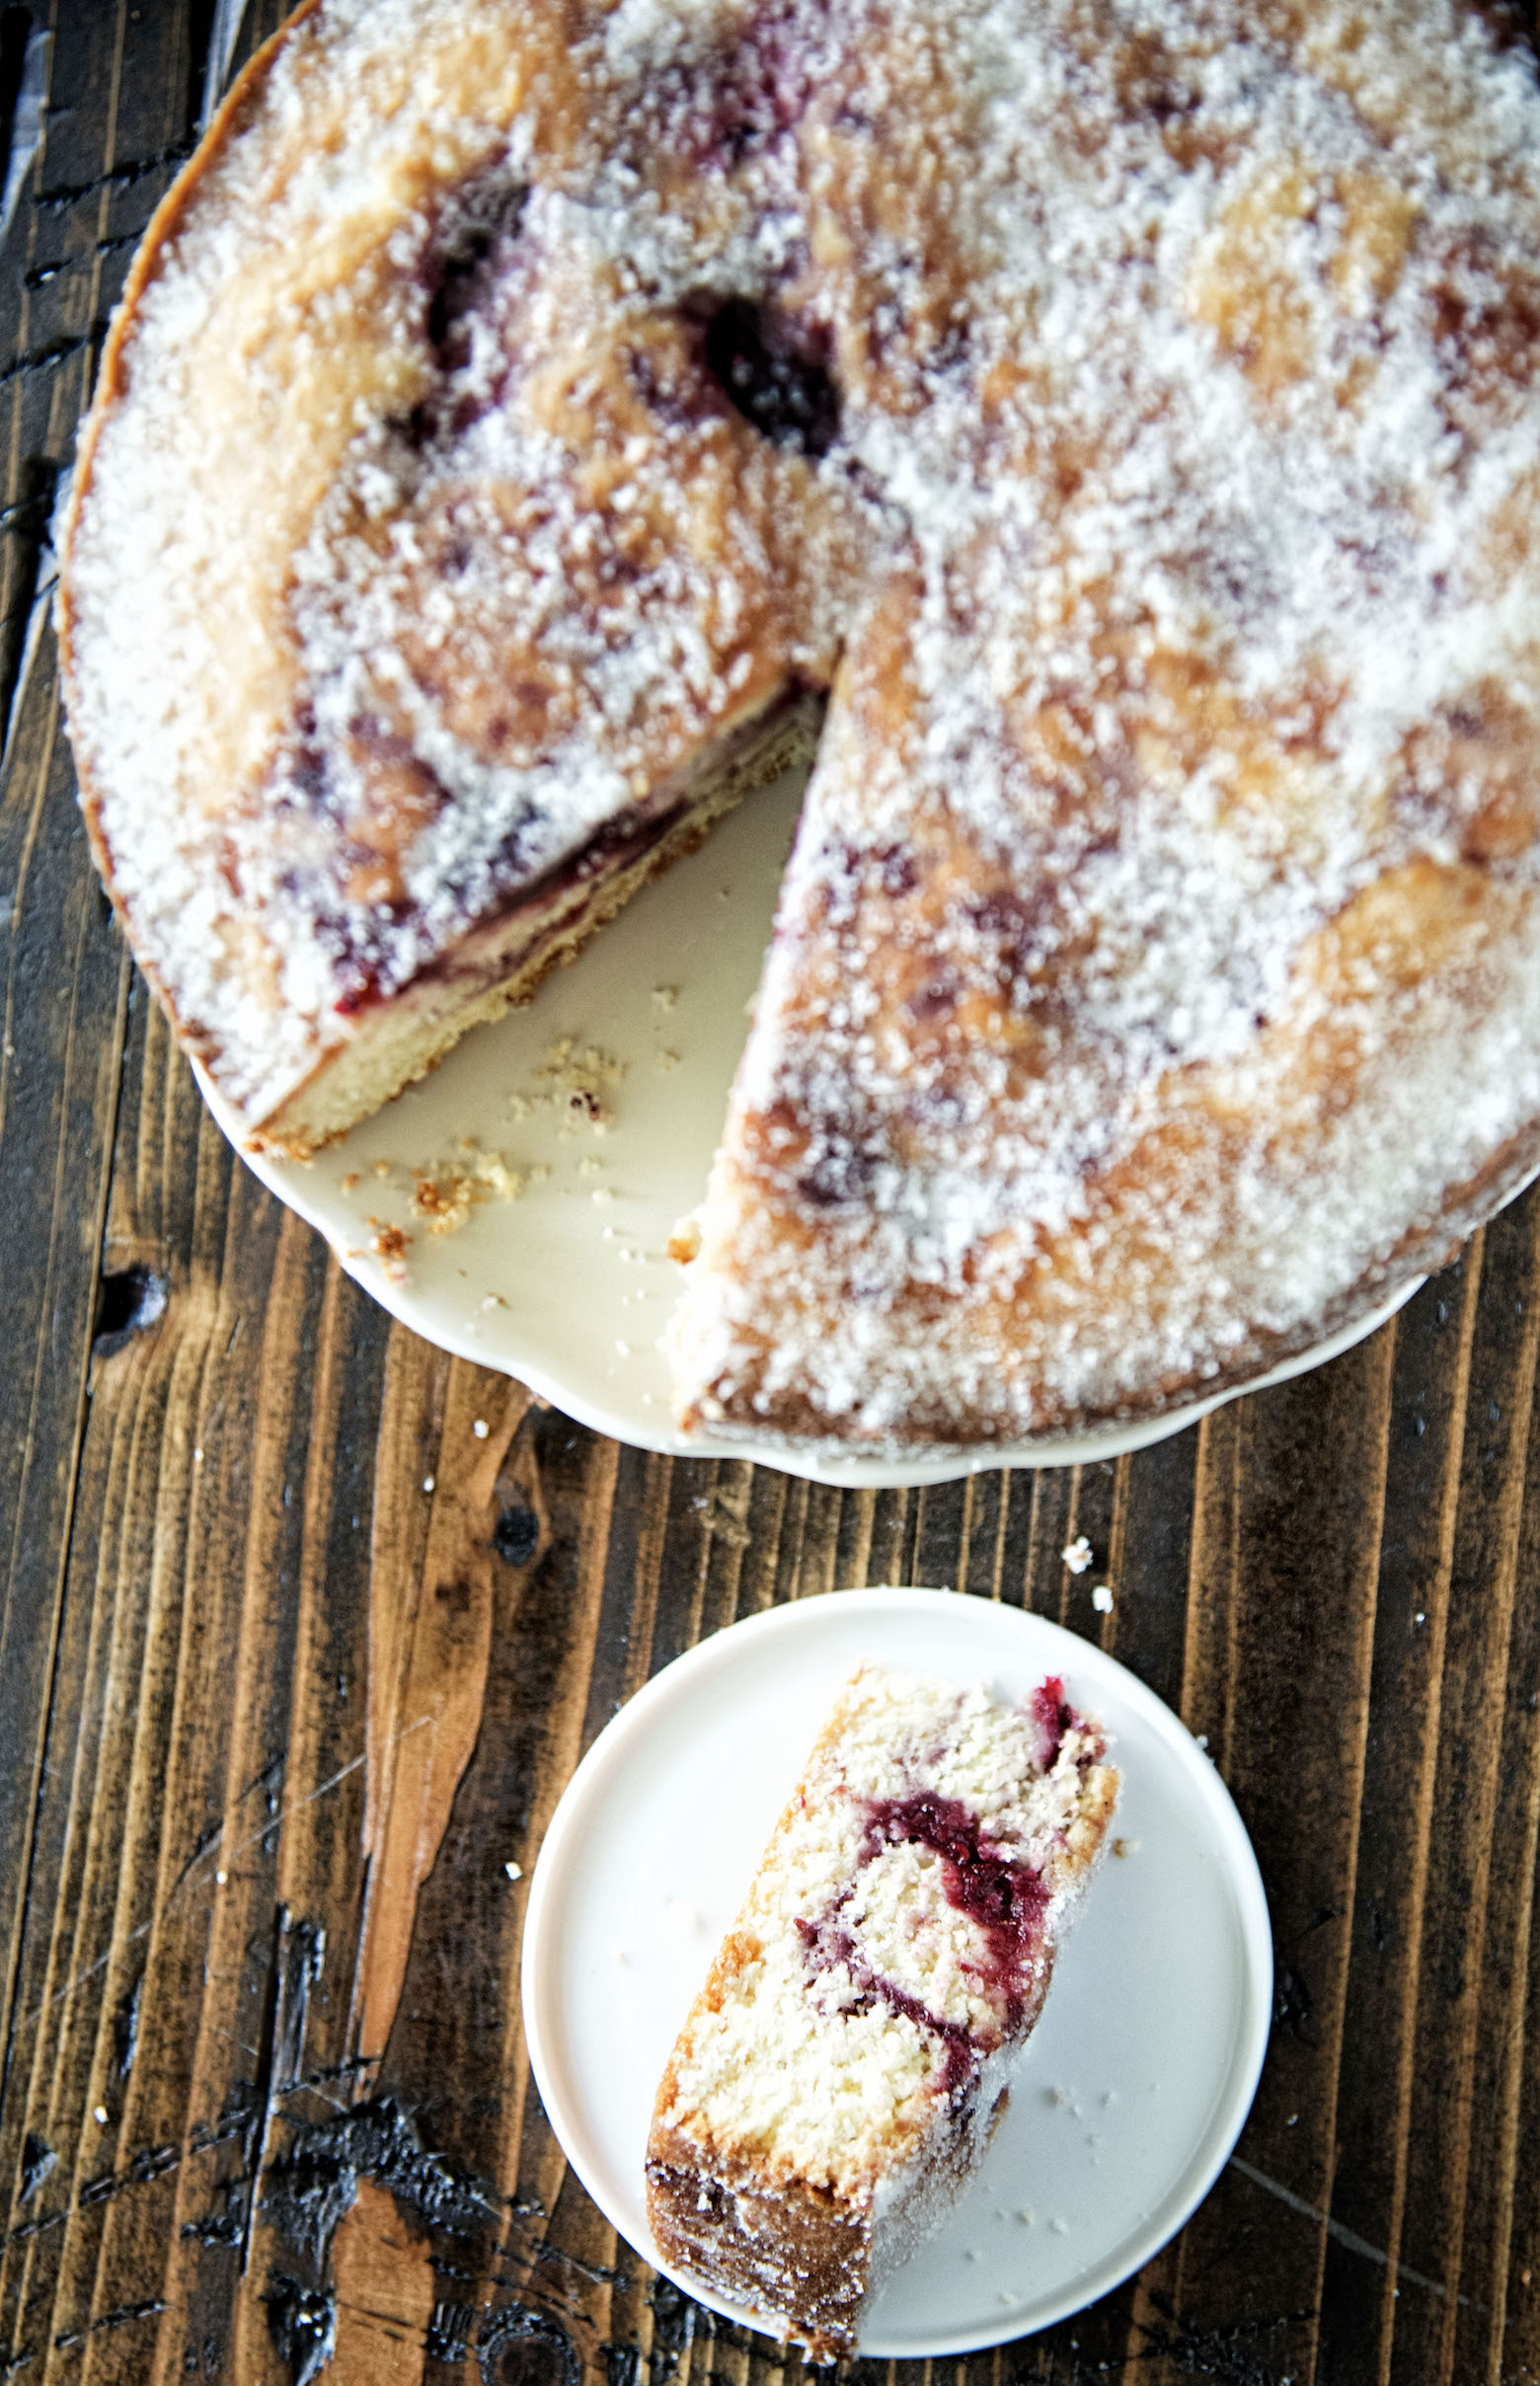 Sweet Corn and Berry Sugared Donut Cake